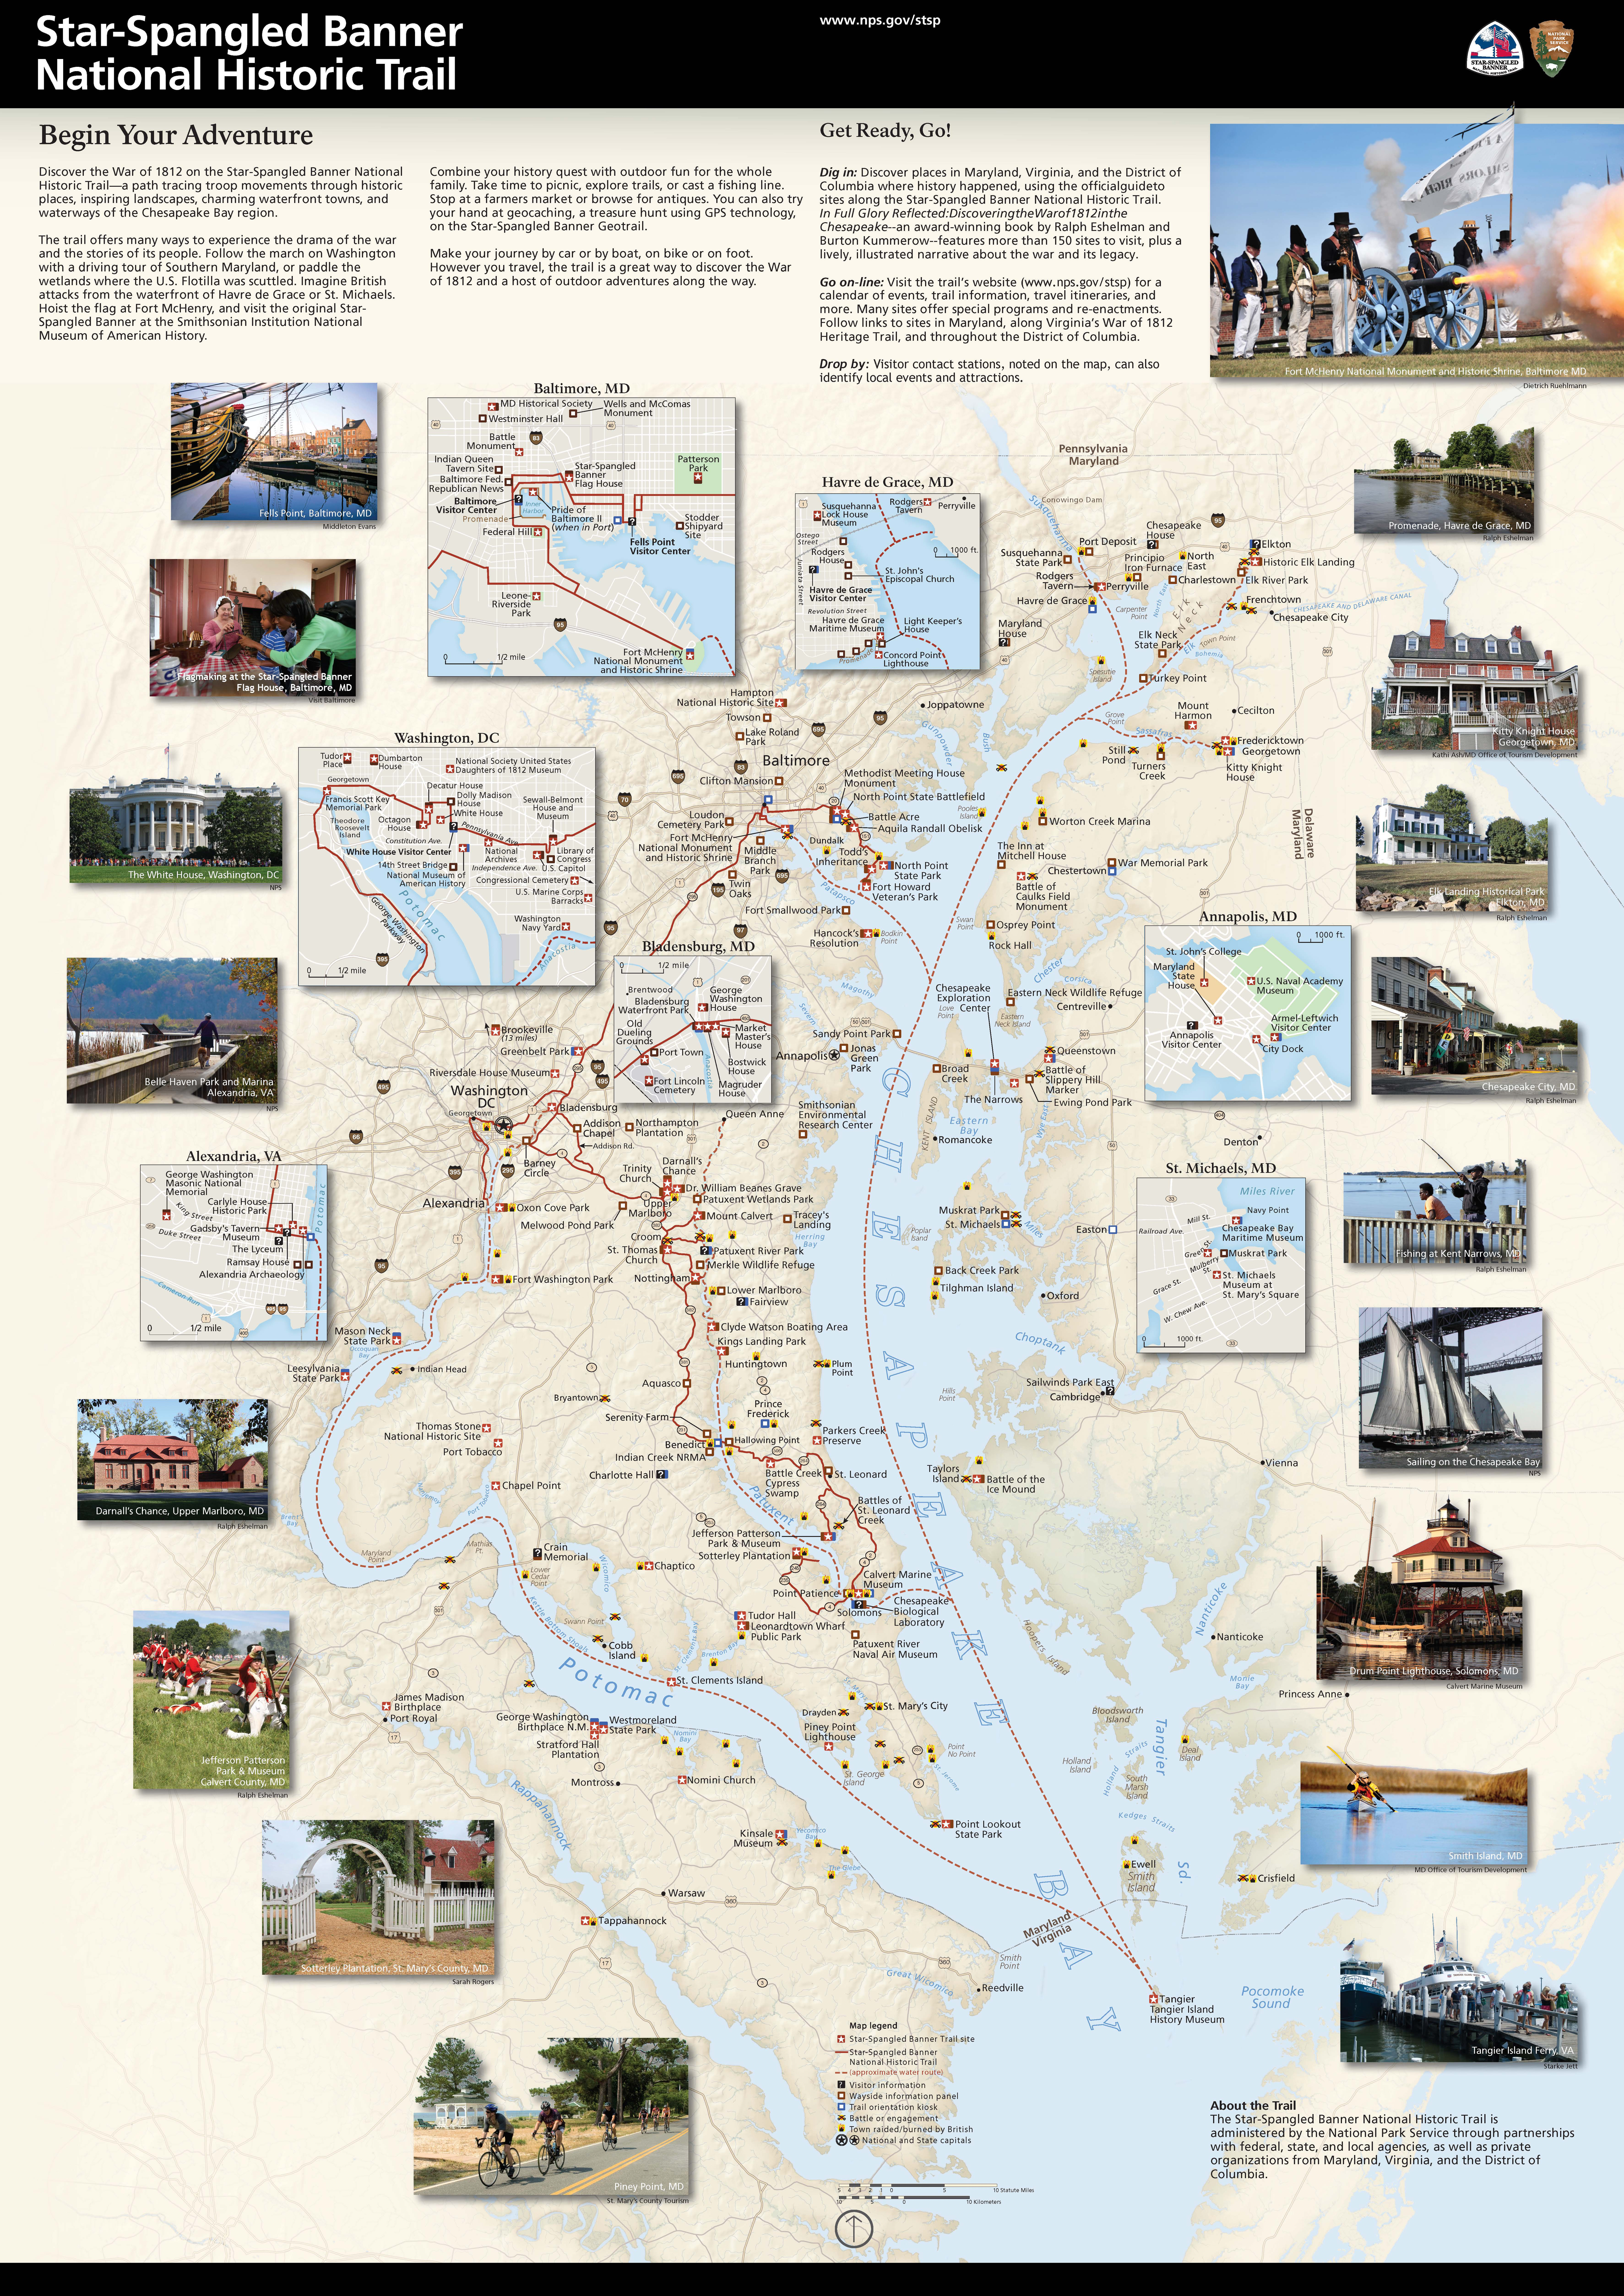 A map of the Star-Spangled Banner National Historic Trail, including photos of points of interest